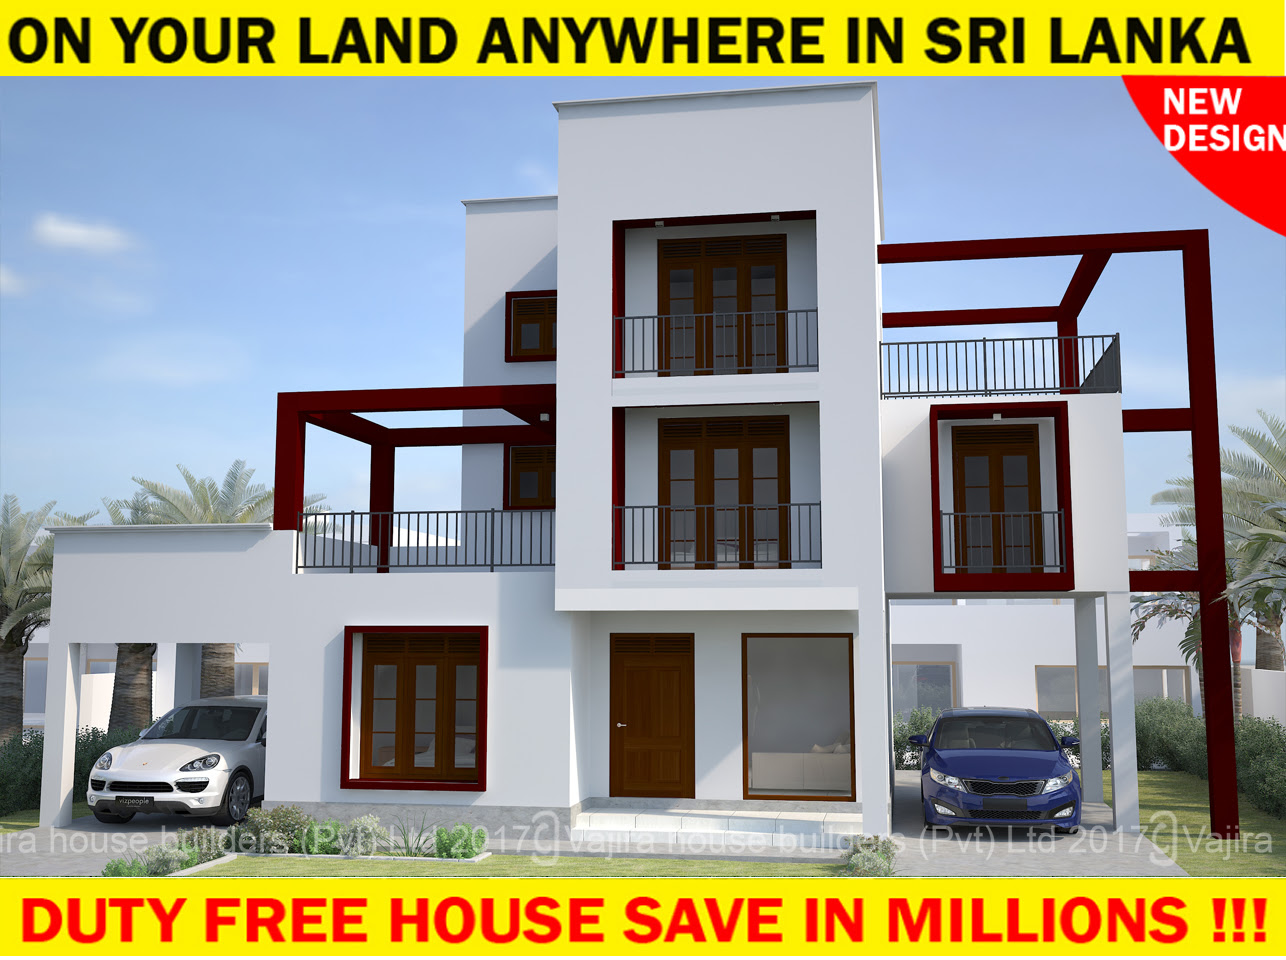 Design Builders Private Limited Home And Garden